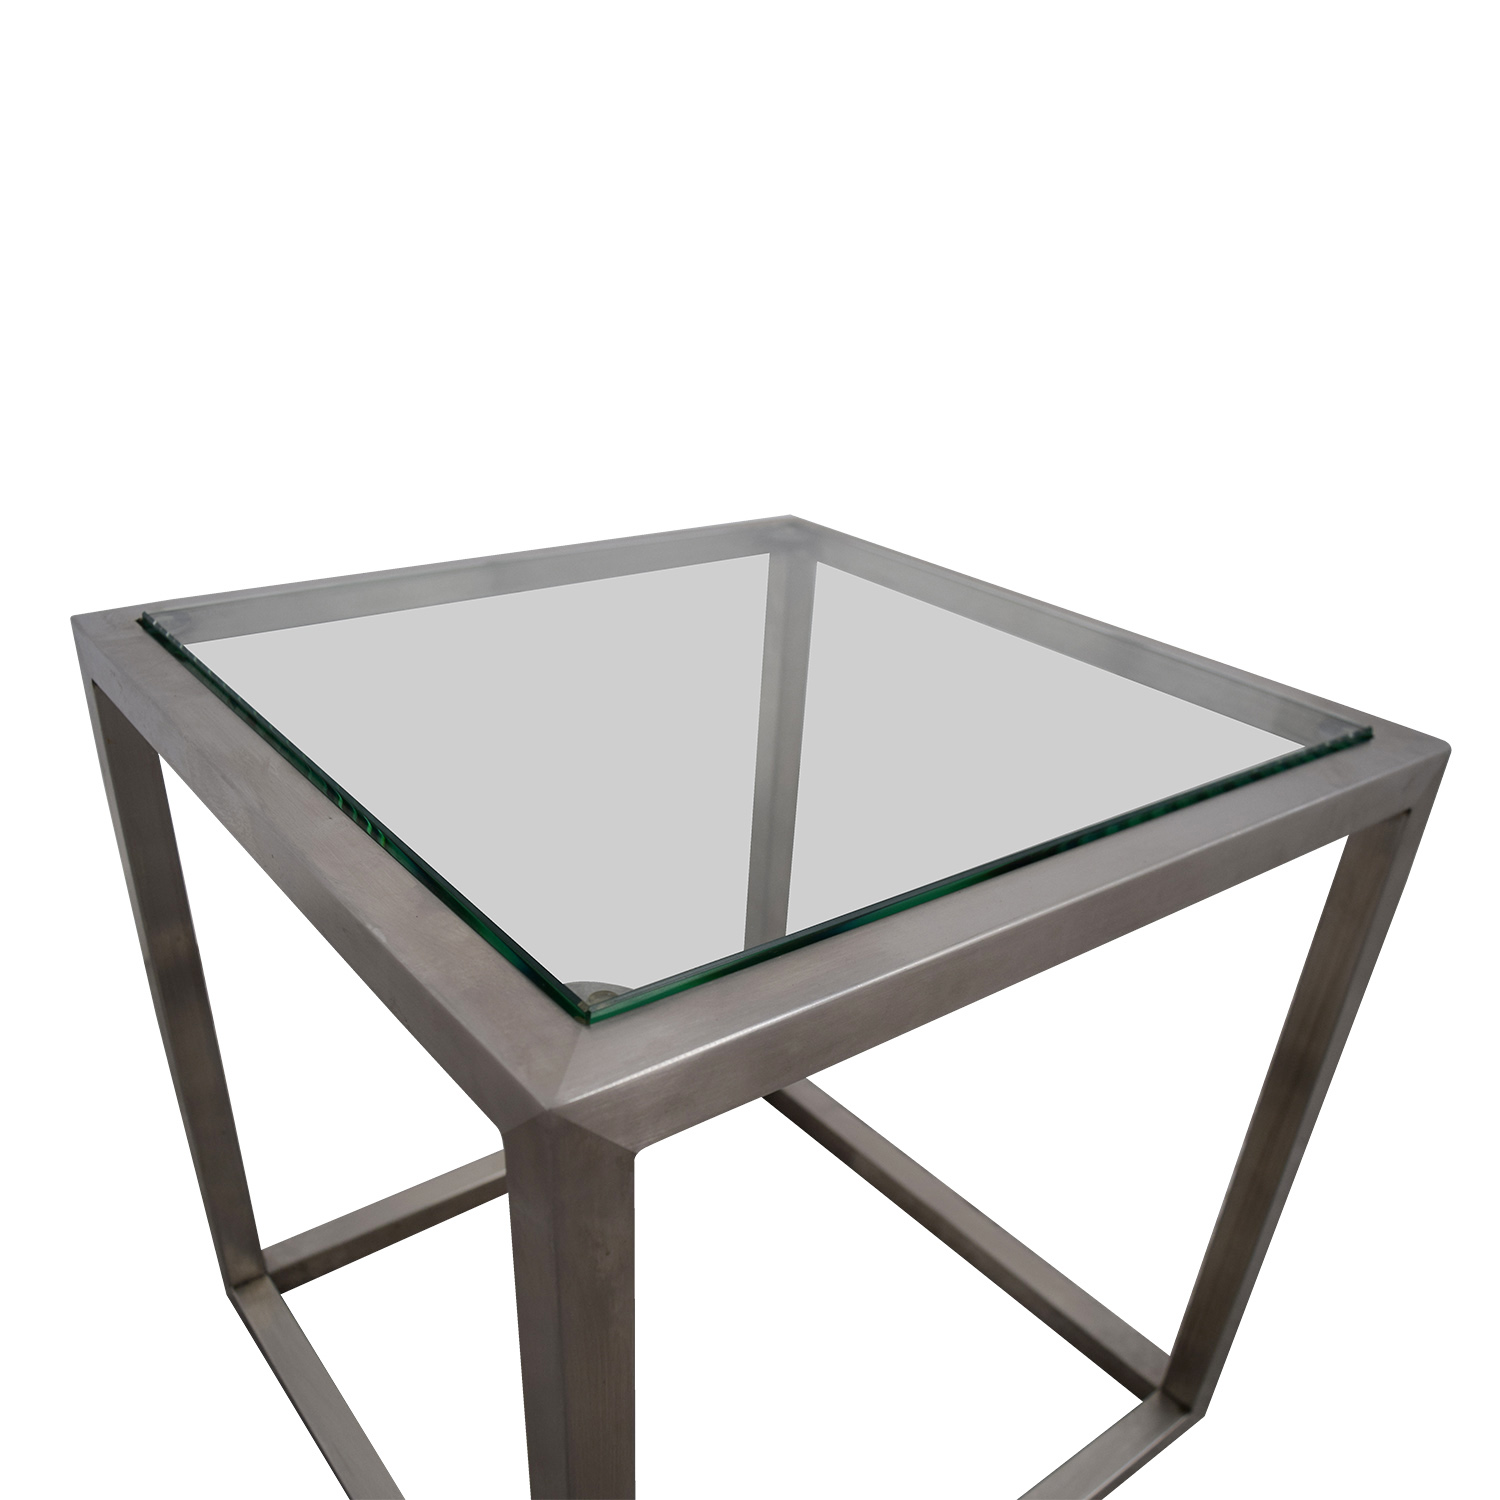 Ethan Allen Coffee Table Glass Top: Ethan Allen Ethan Allen Metal And Glass Cube